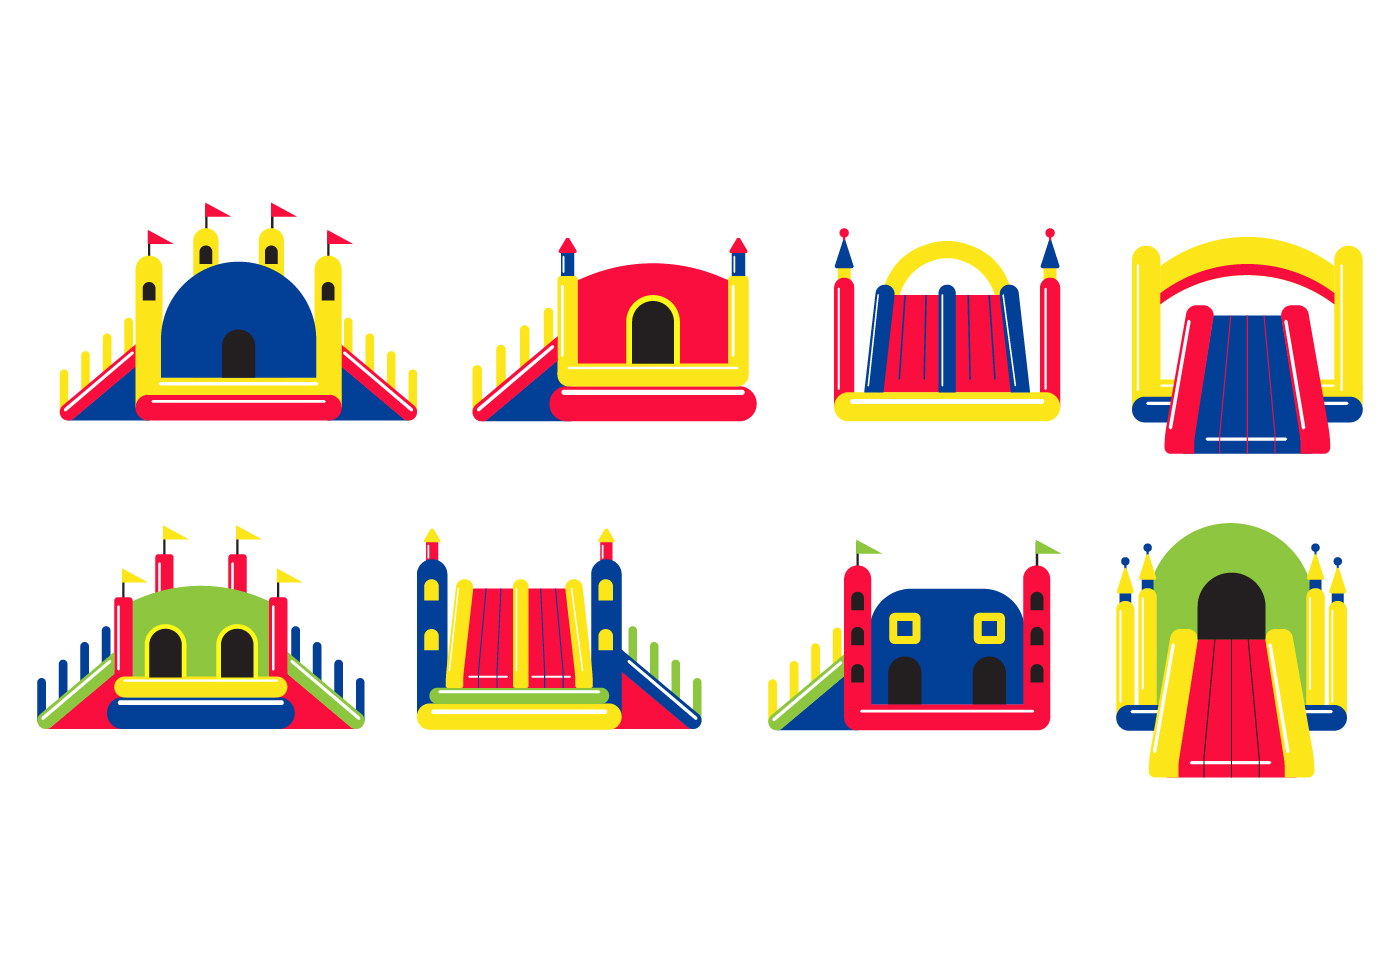 free bounce house clipart - photo #41